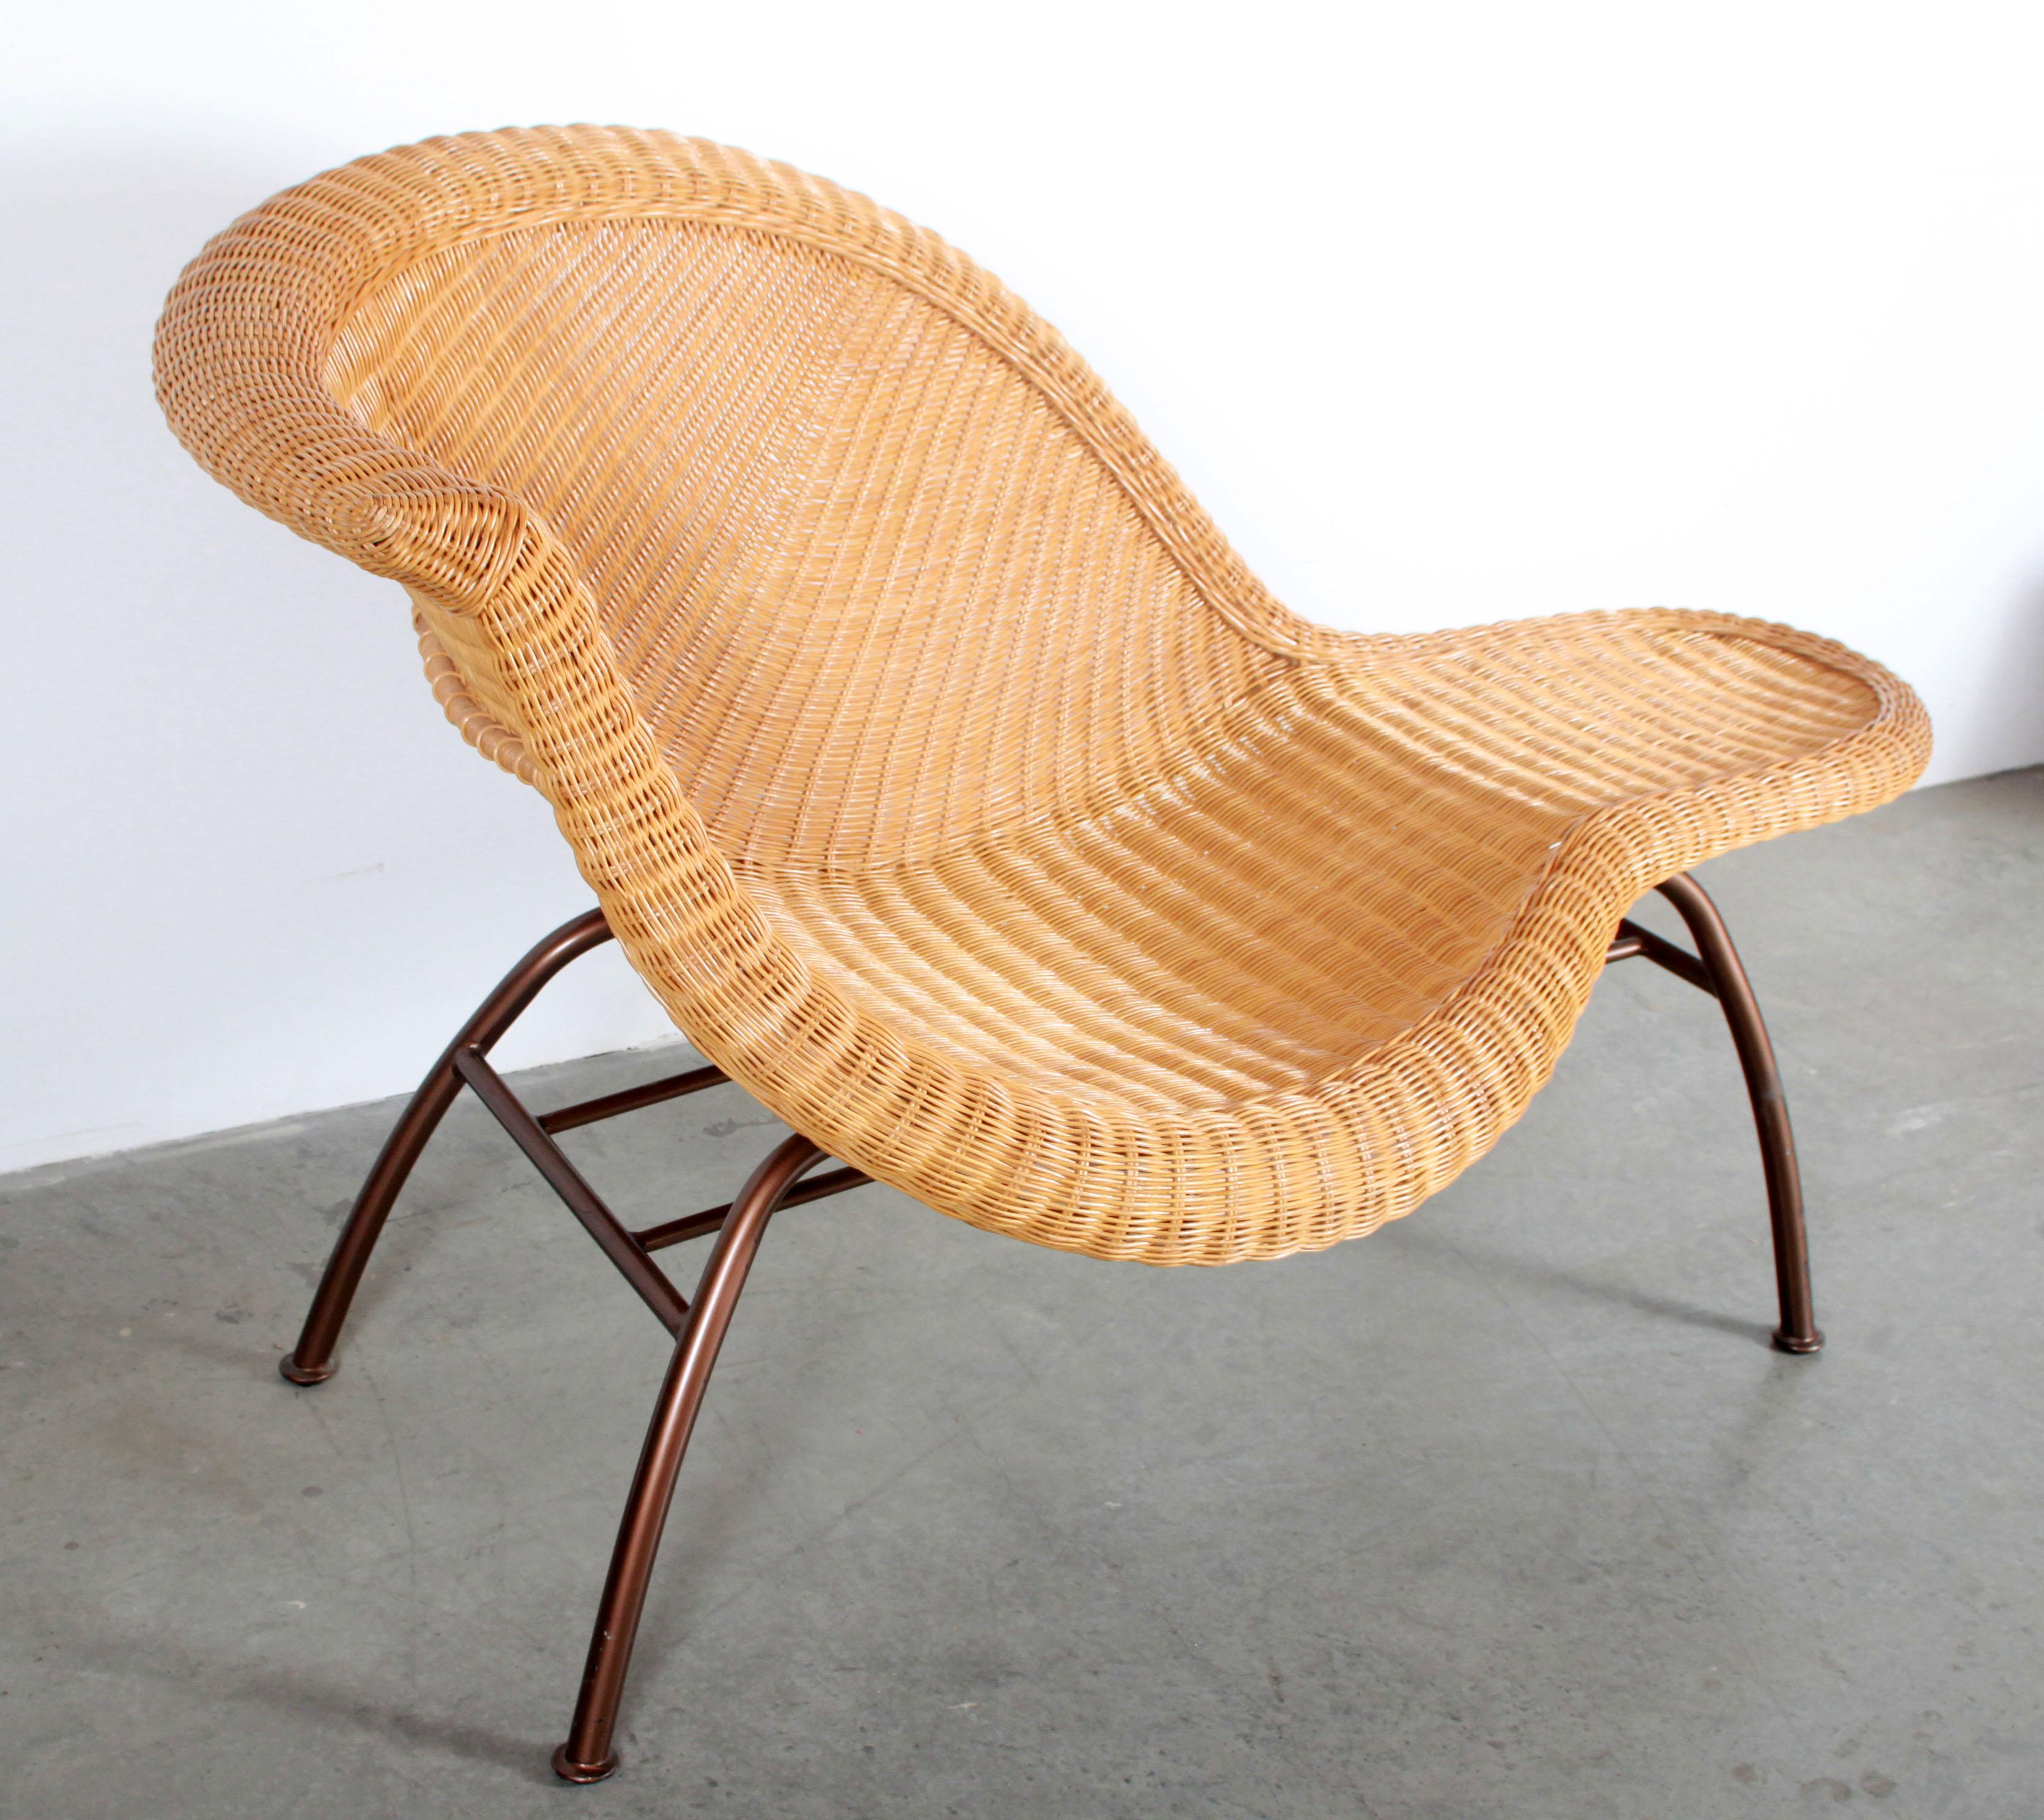 vintage mid century modern wicker chaise lounge after eames la chaise